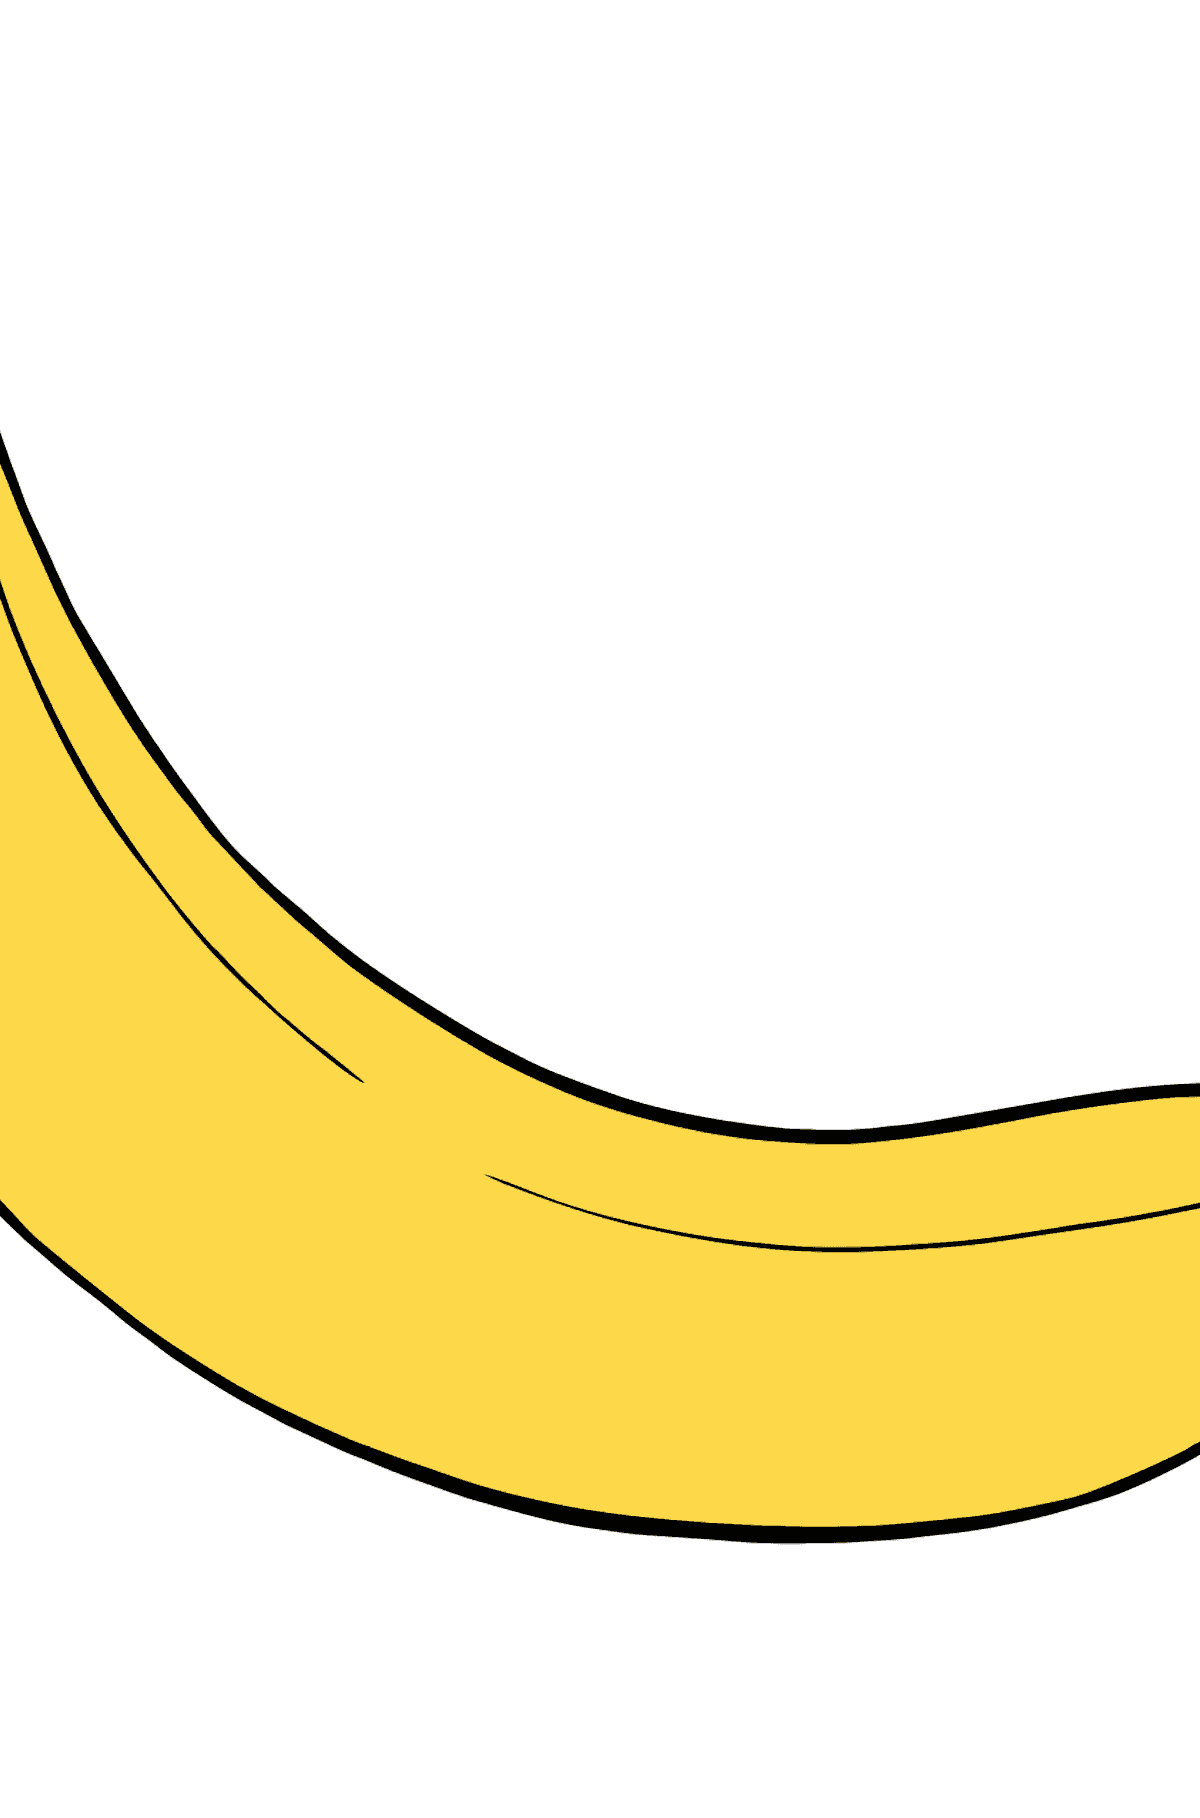 Banana coloring page - Coloring Pages for Kids